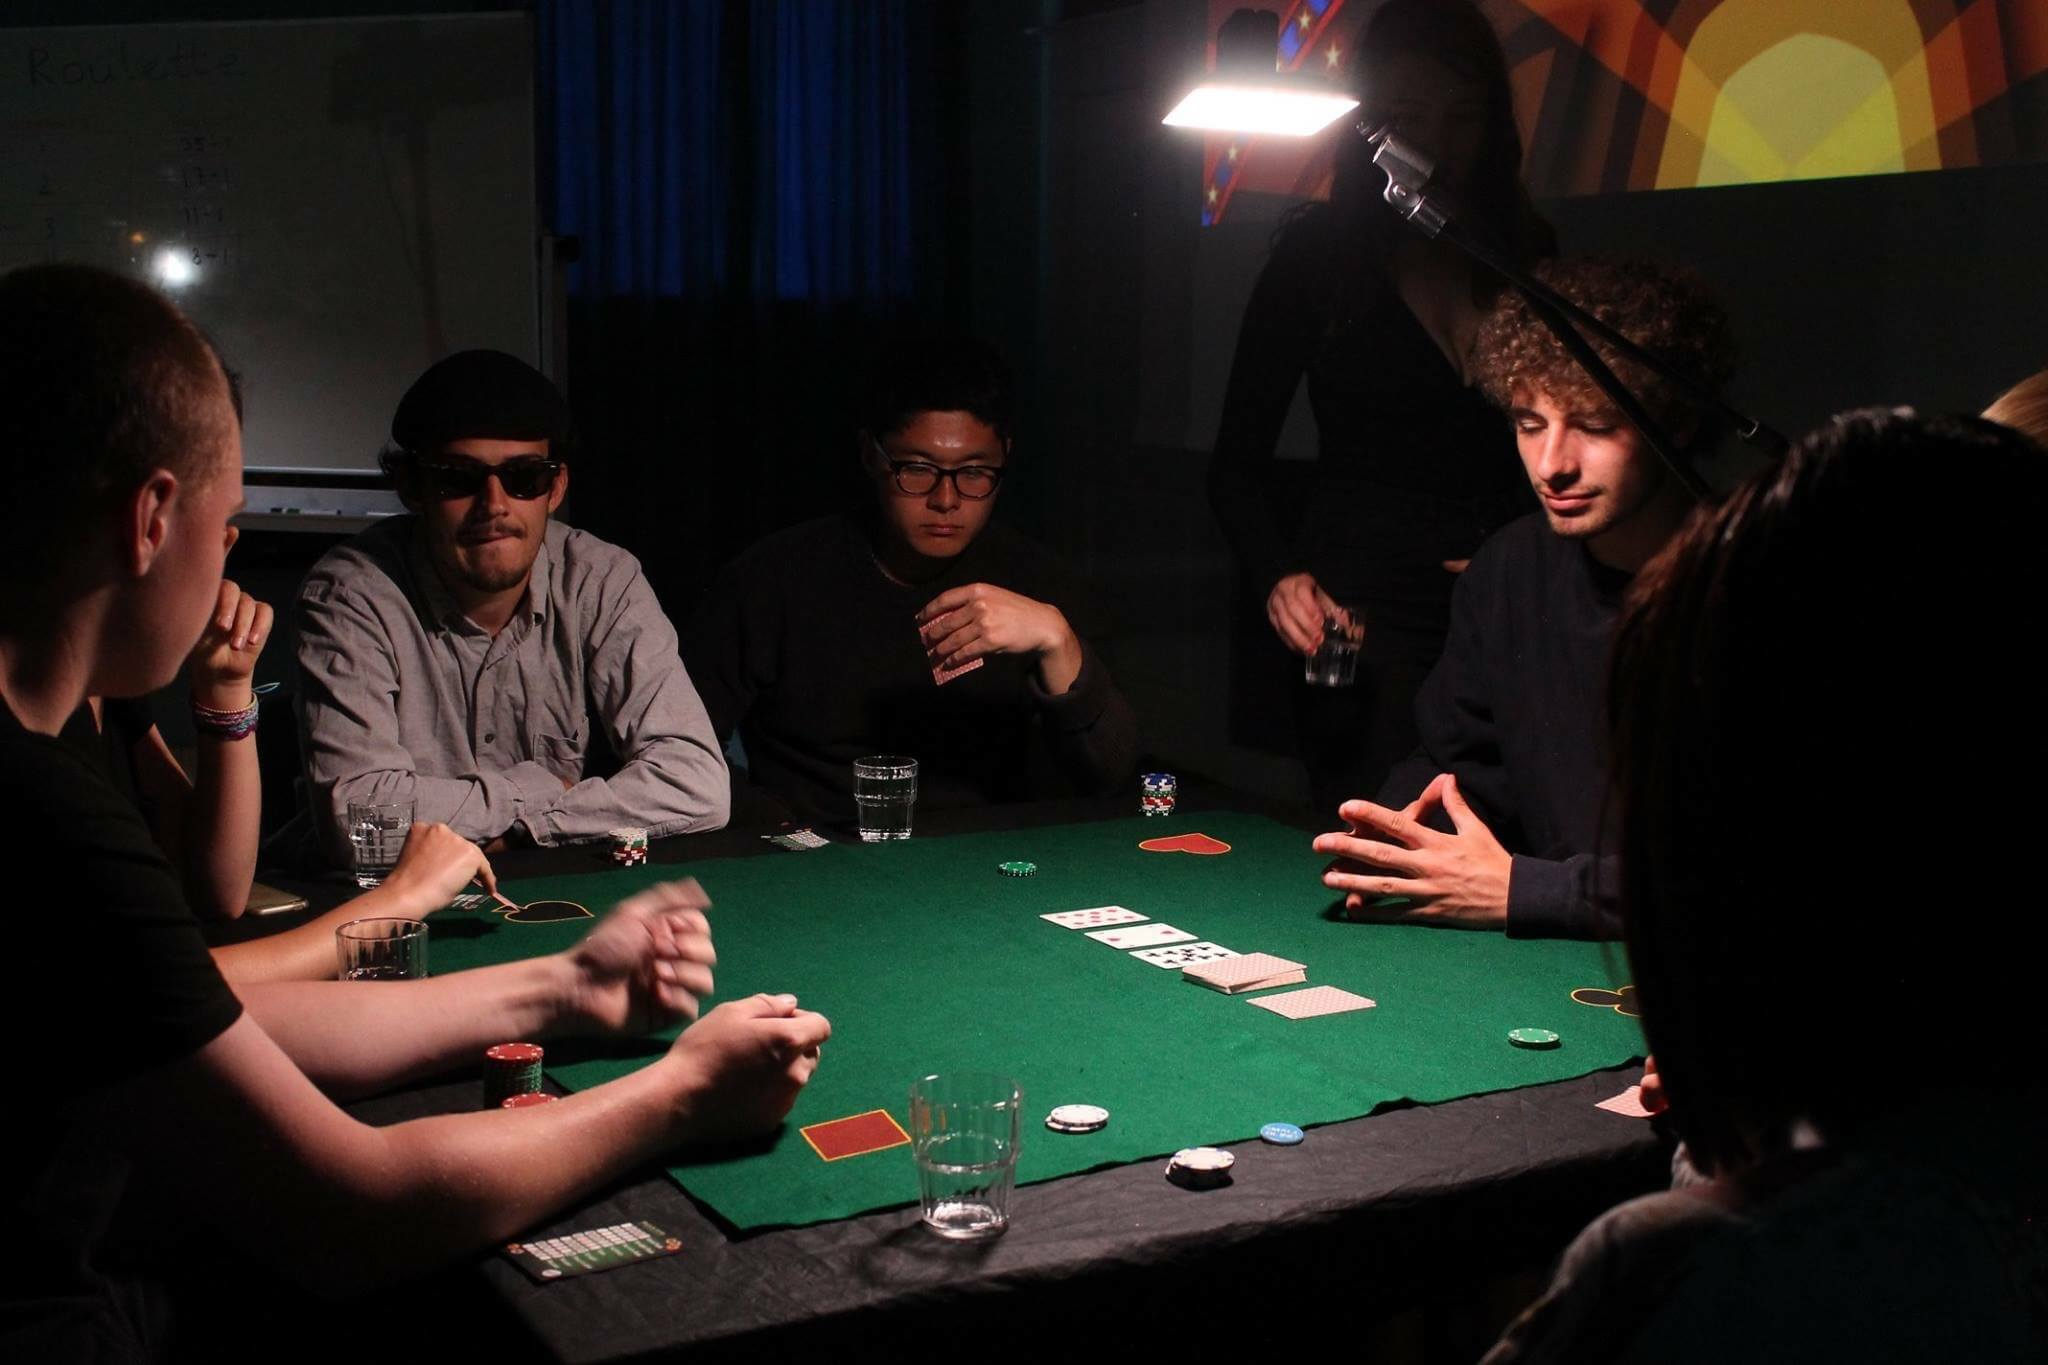 Folk High School Activity at International People's College in Denmark poker night